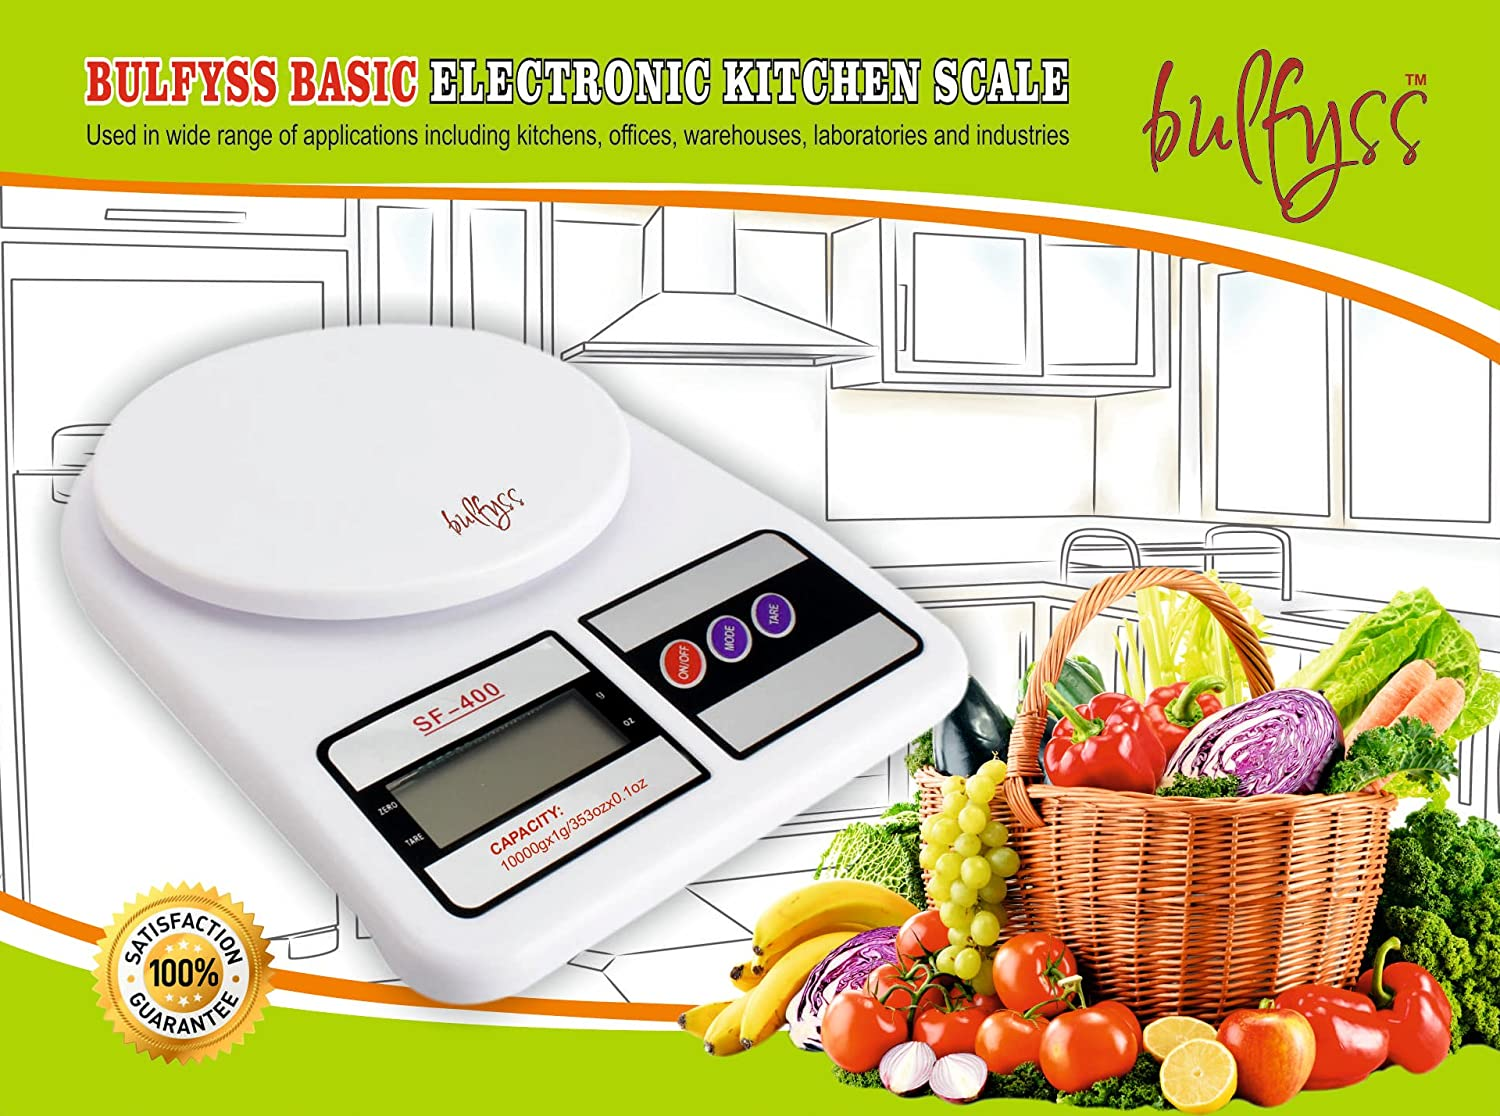 Small Kitchen Weighing Scales Buy Bulfyss Electronic Kitchen Digital Weighing Scale 10 Kg 1